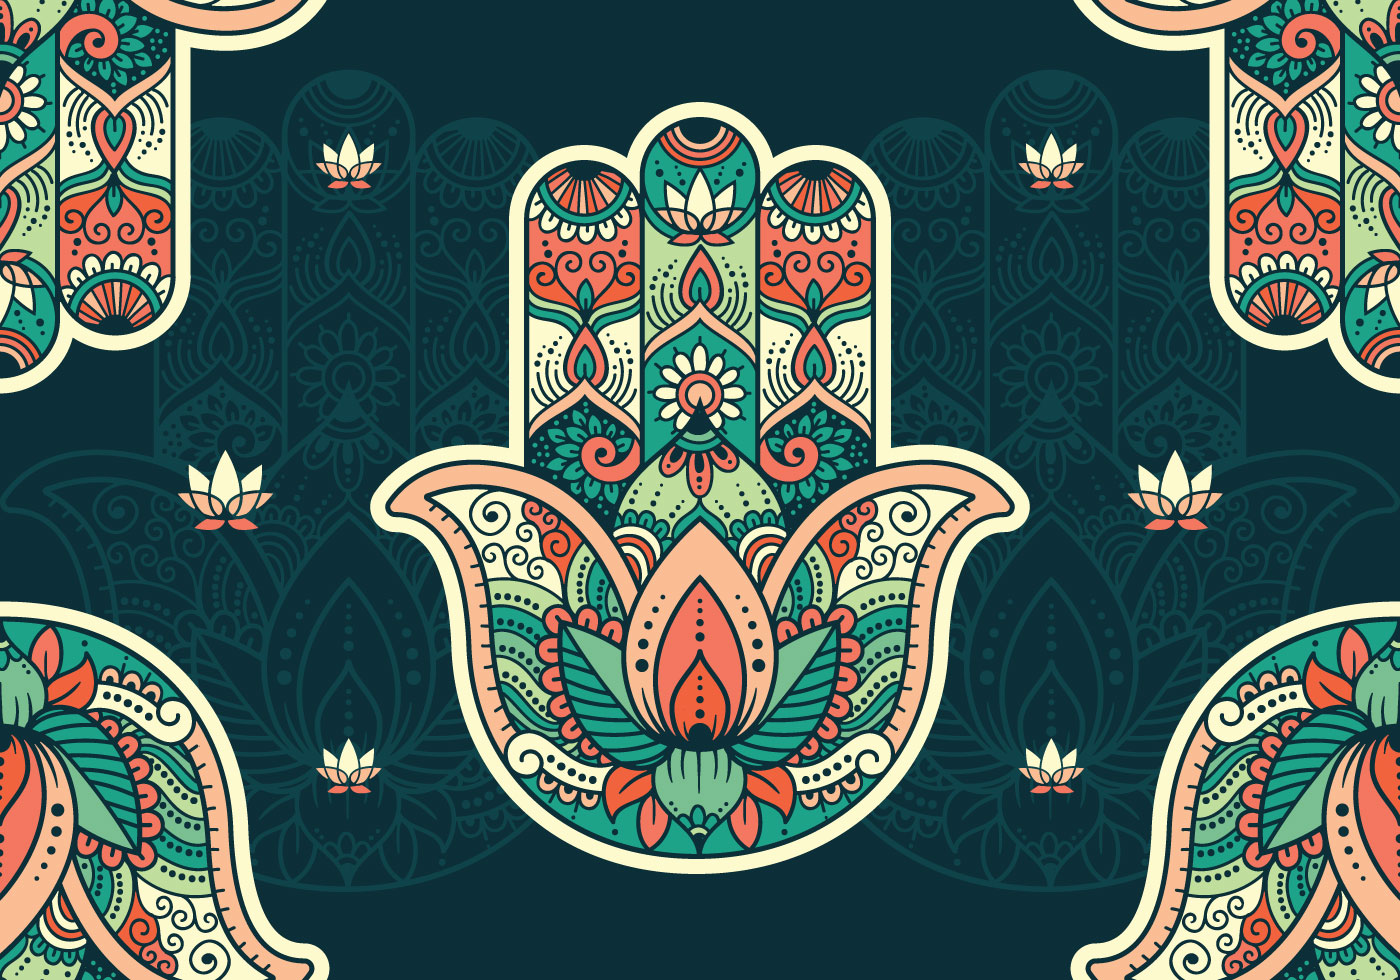 hamsa wallpaper wwwpixsharkcom images galleries with